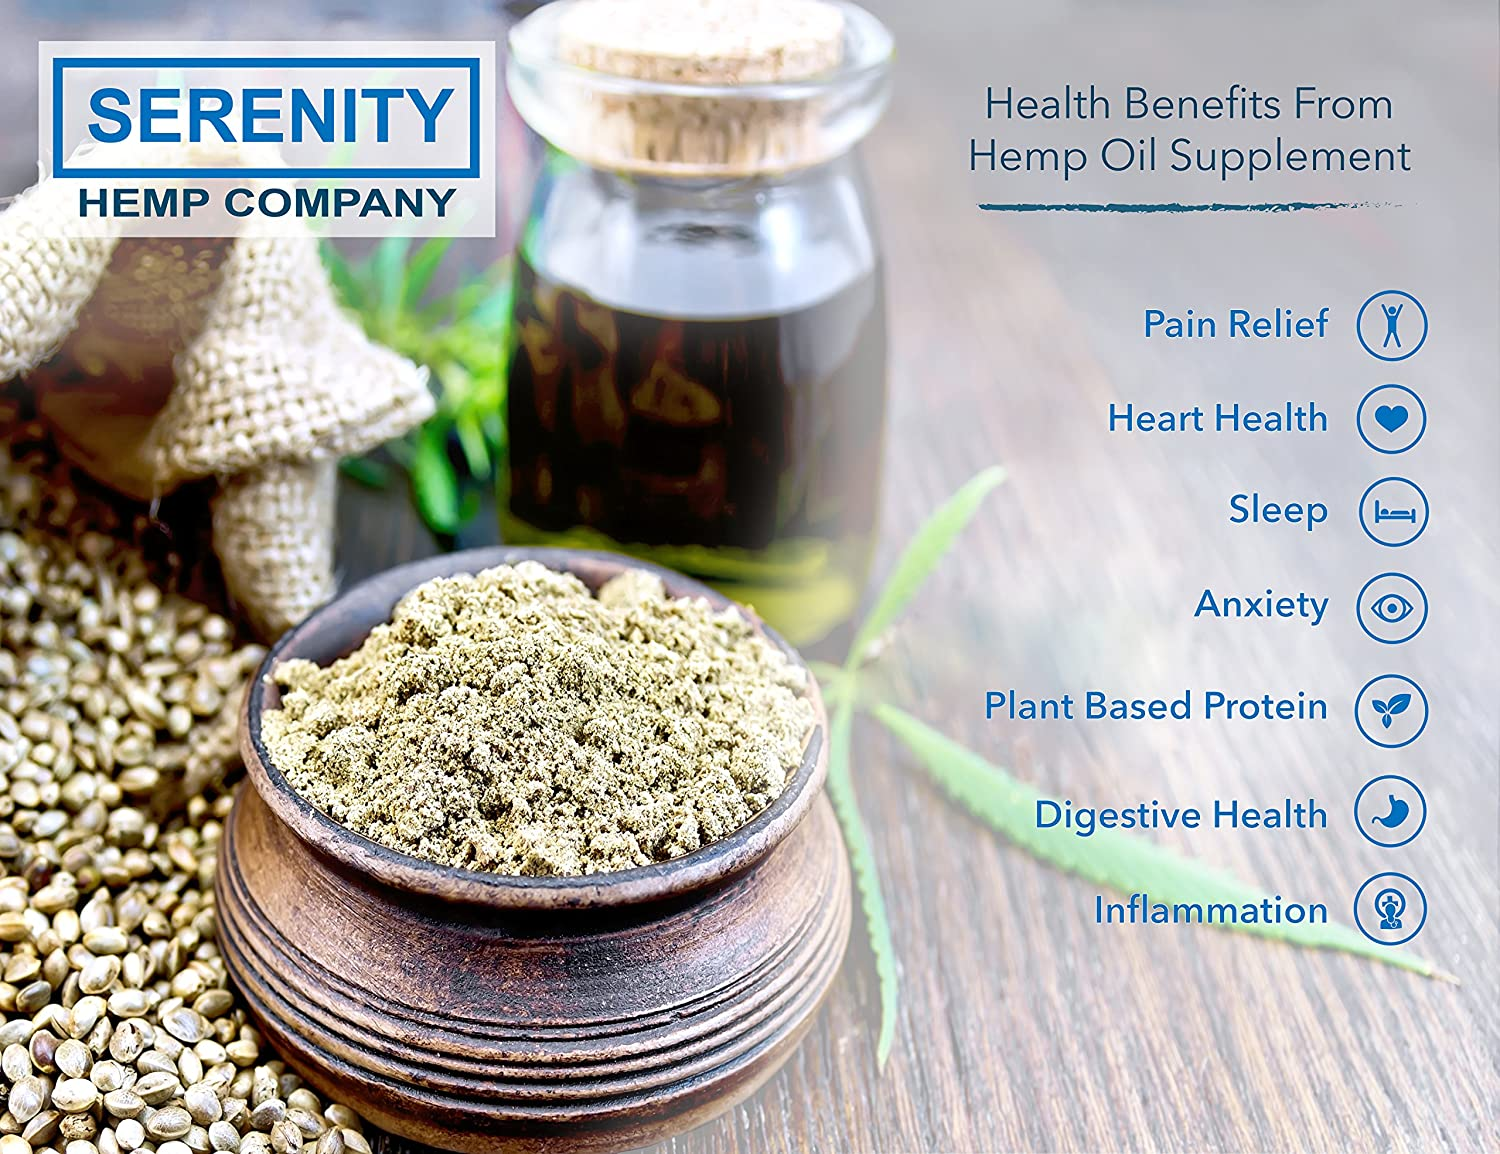 Element x cbd review reduces anxiety pain and stress is it legal - Amazon Com Serenity Hemp Oil Peppermint Flavor 2 Fl Oz 500mg Certified Organic 99 9 Pure Full Spectrum Hemp Extract For Pain Stress Anxiety